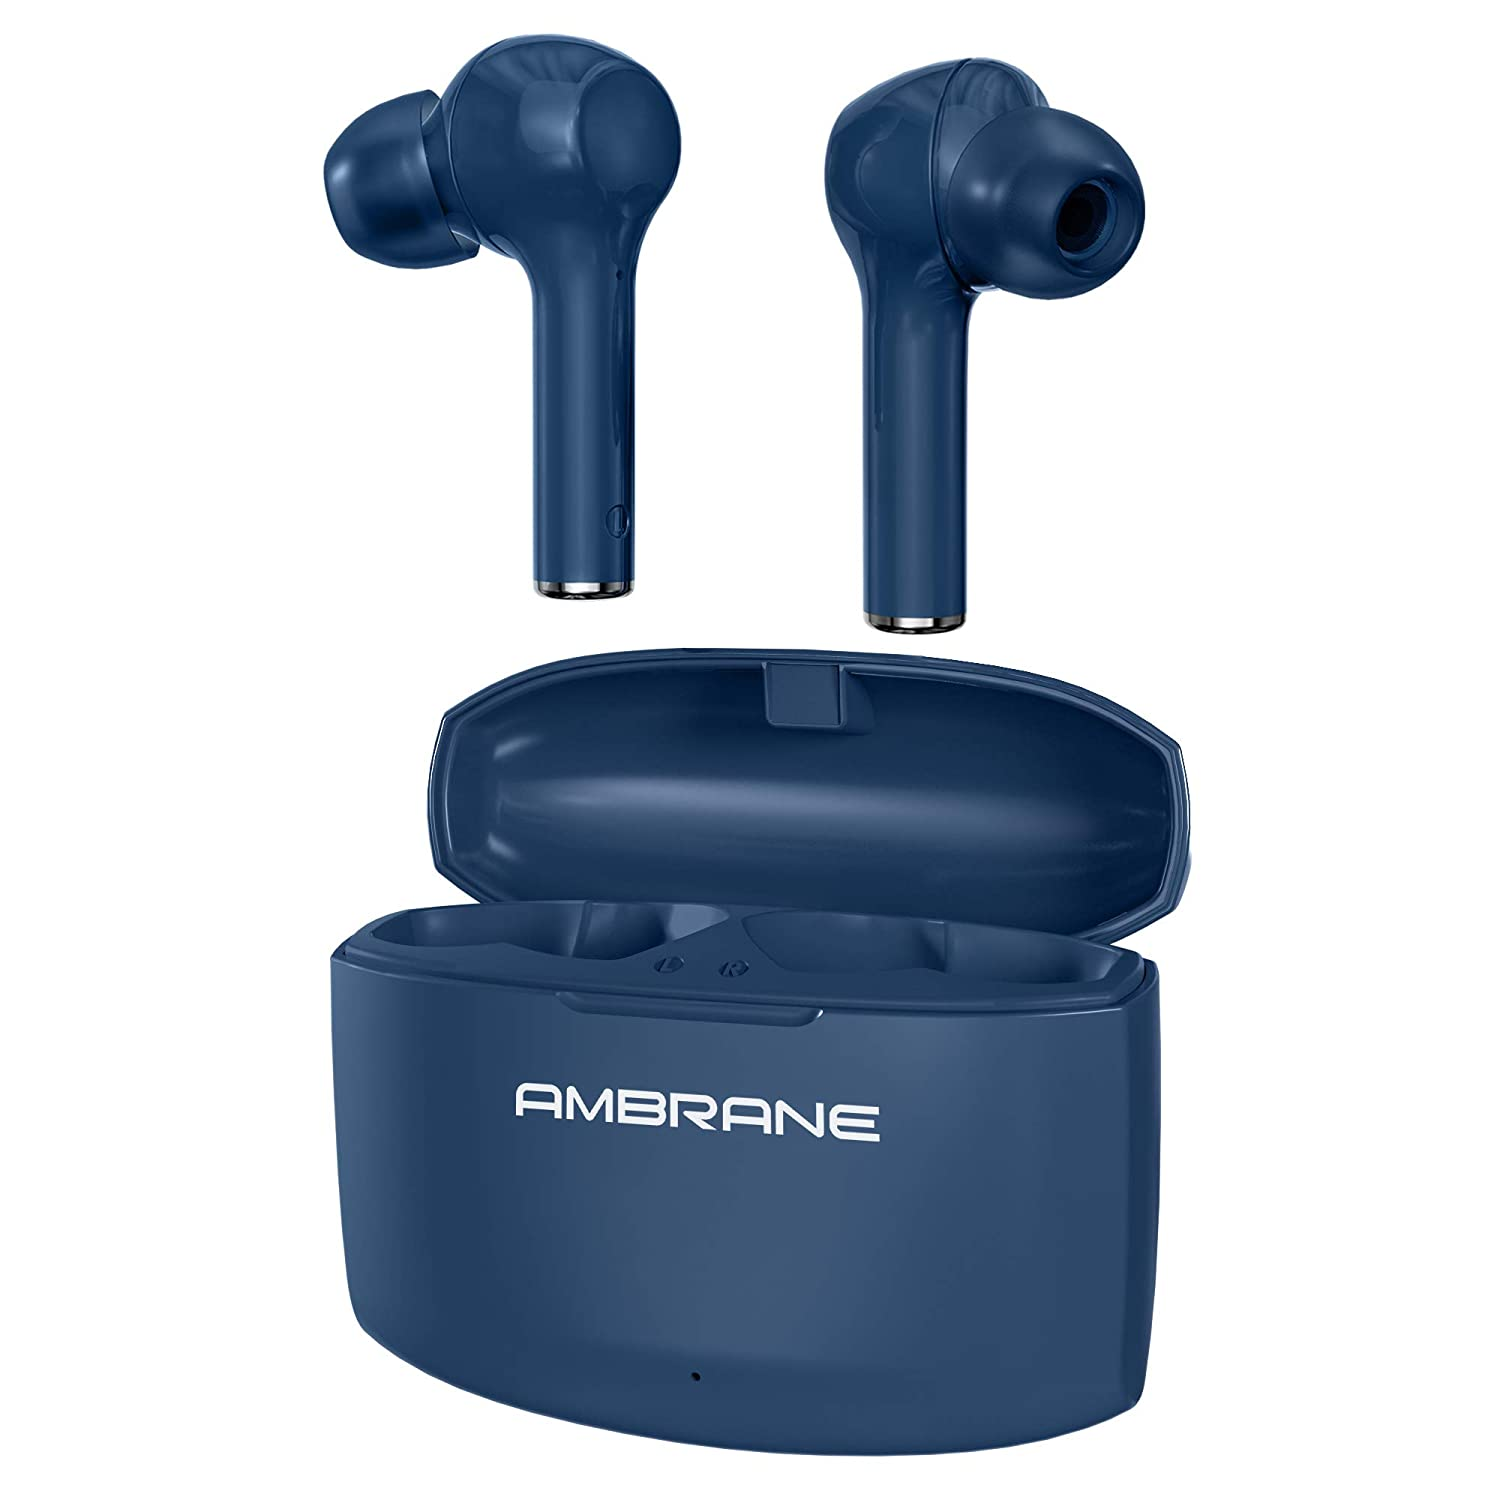 Ambrane NeoBuds 33 True Wireless Earbuds with 15 Hours Total Playtime, High Bass Immersive Sound, Touch Controls, IPX4 Waterproof, Voice Assistance & inbuilt Mic (Indigo Blue), Normal